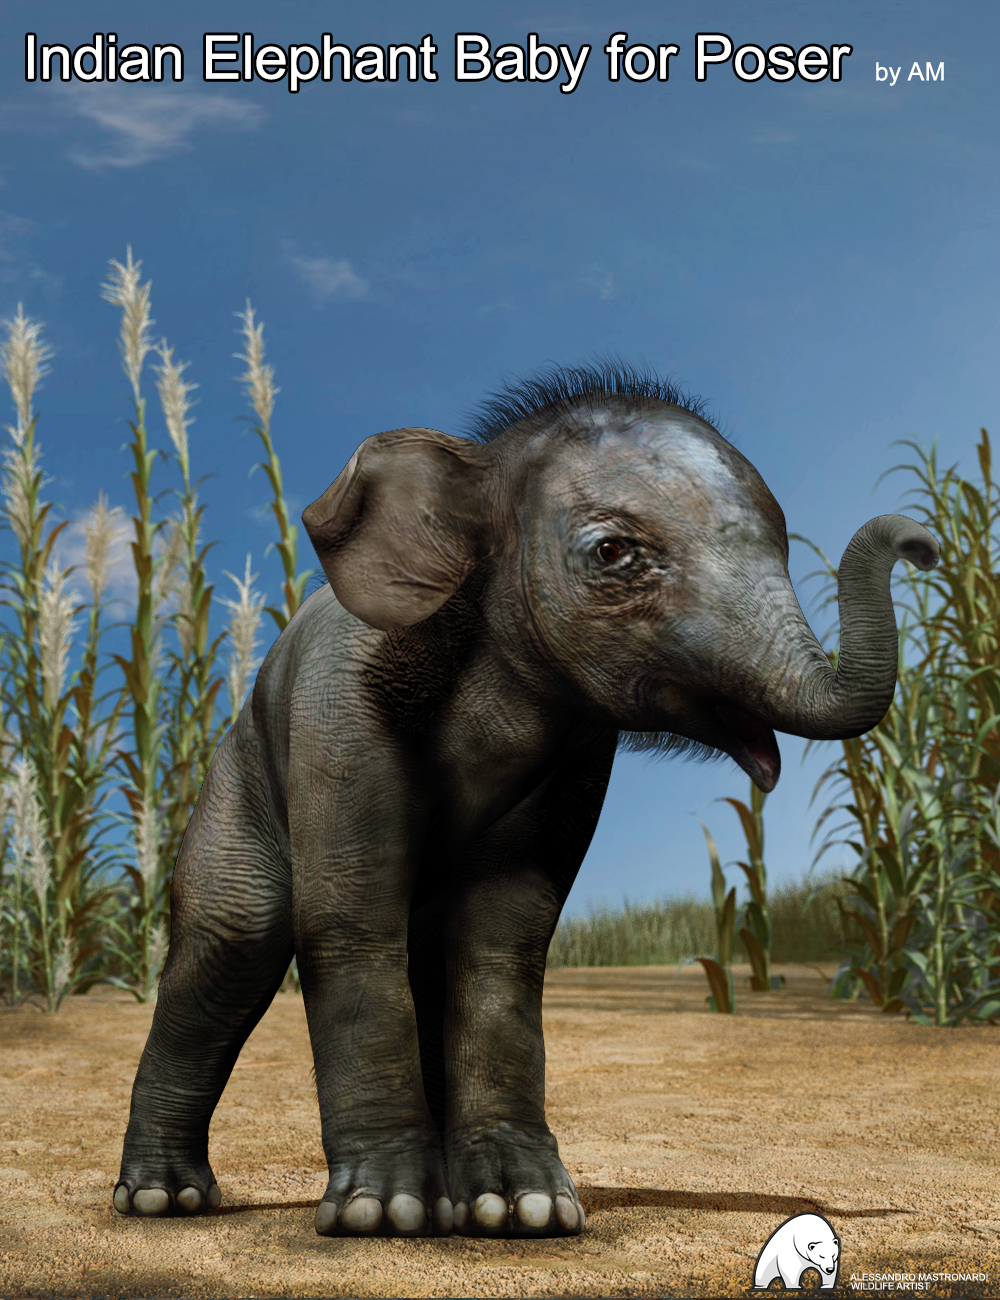 Indian Elephant Baby for Poser by AM by: Alessandro_AM, 3D Models by Daz 3D